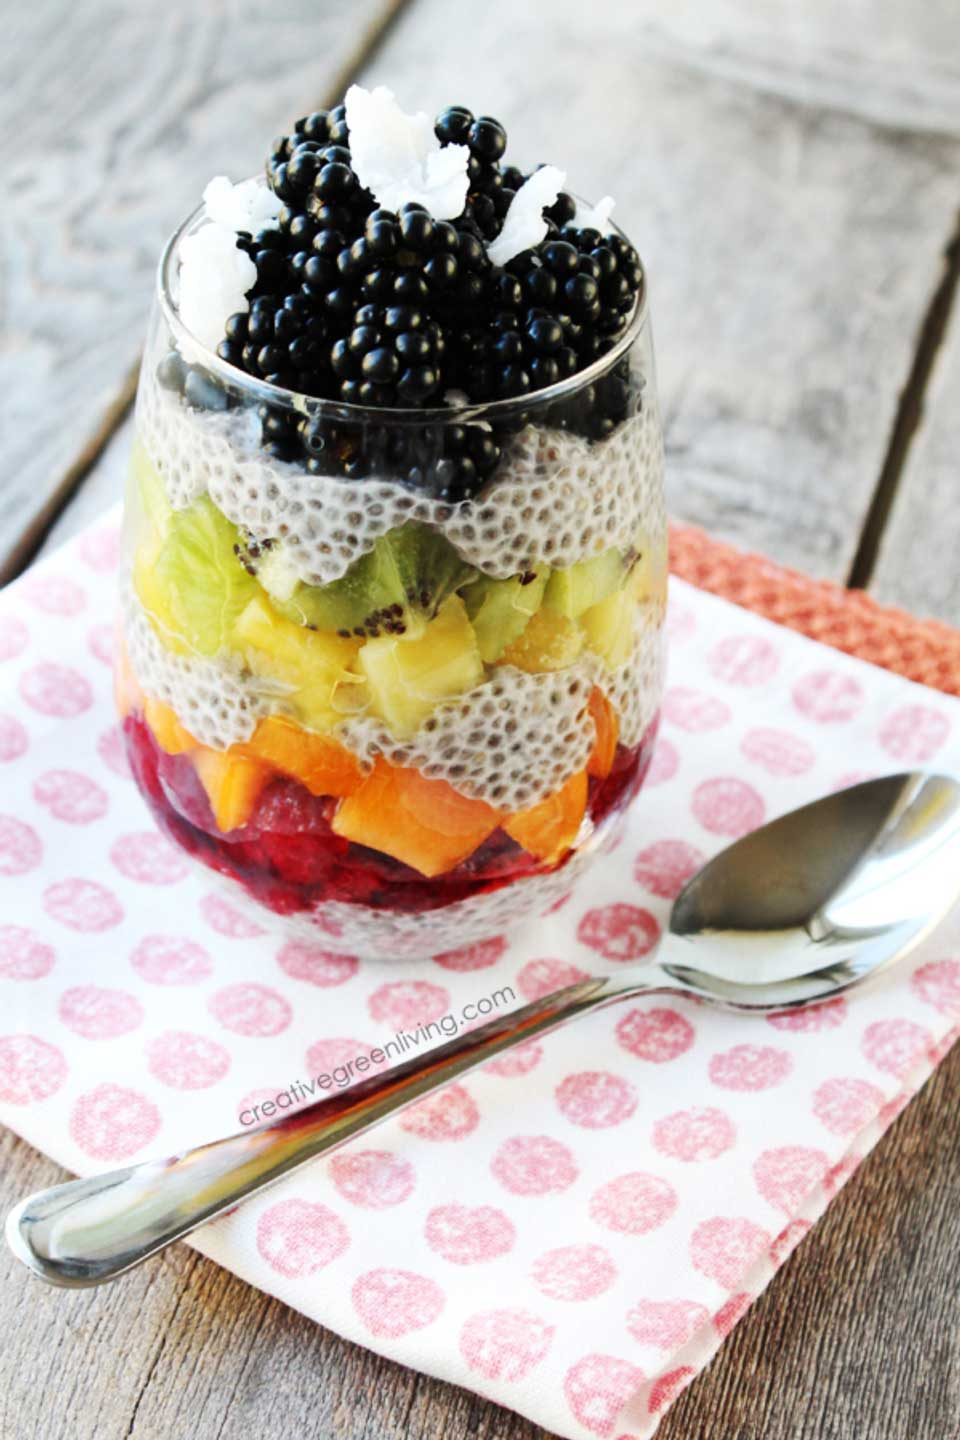 Glass with layers of chia pudding and rainbow-colored fruits, sitting on a pink polka-dot napkin next to a spoon.